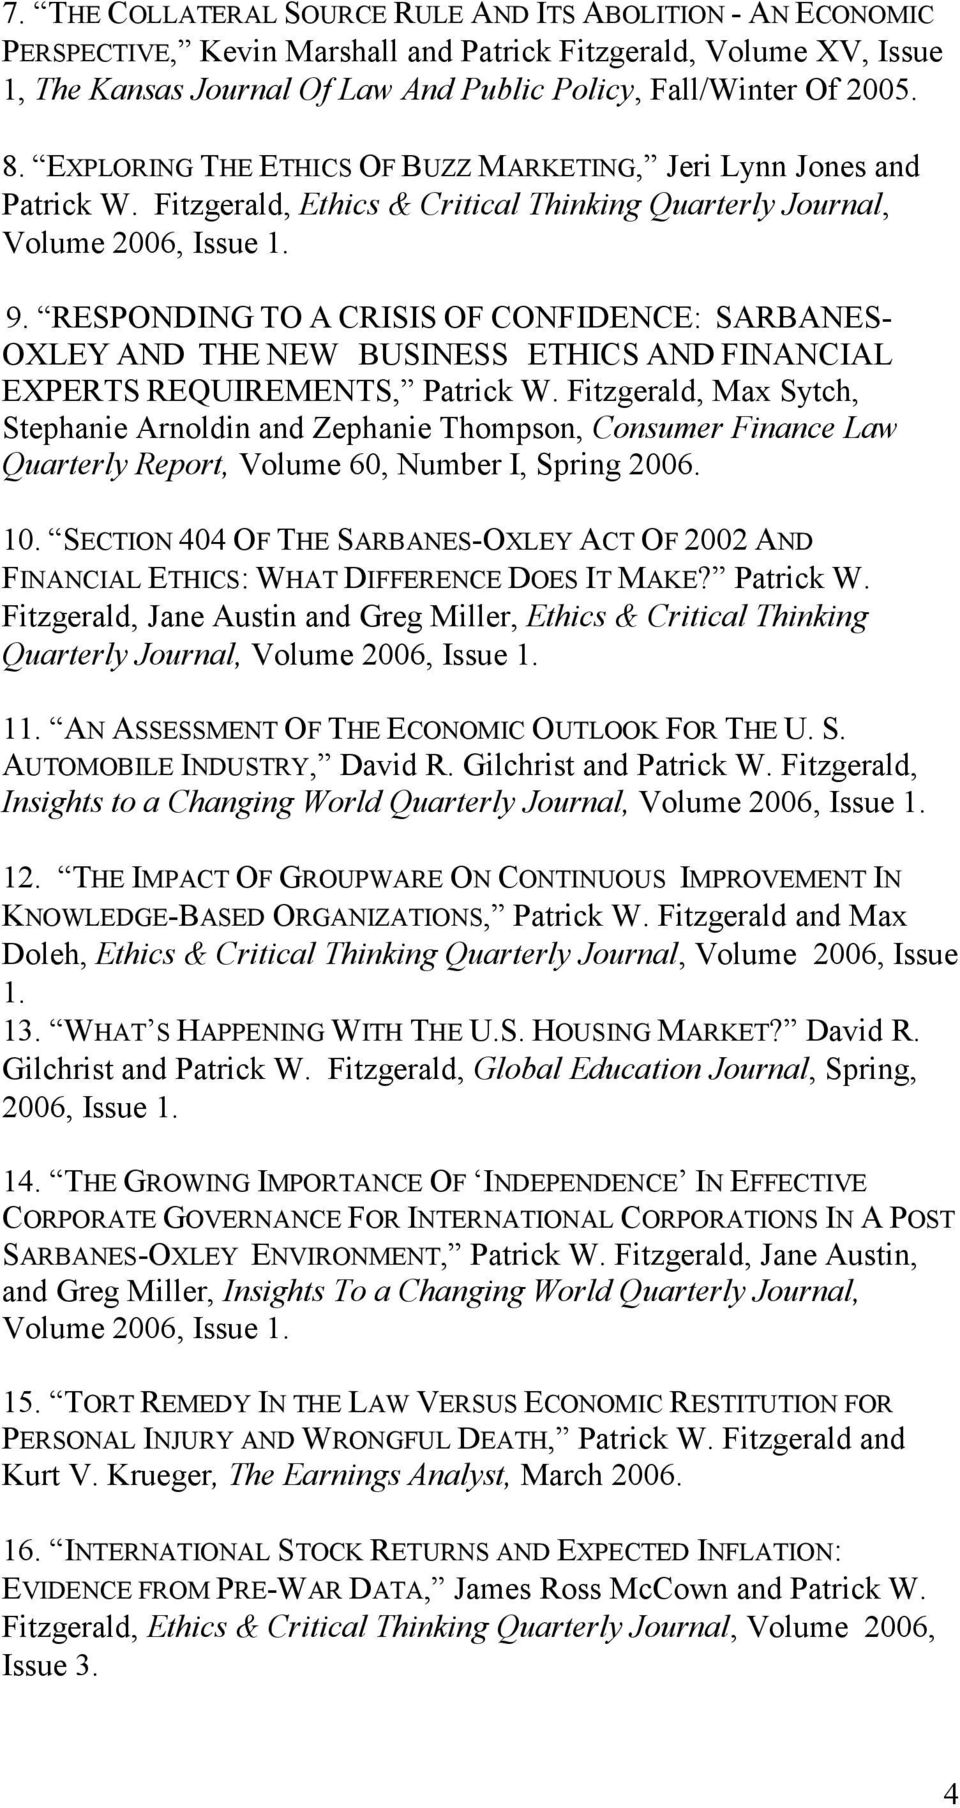 RESPONDING TO A CRISIS OF CONFIDENCE: SARBANES- OXLEY AND THE NEW BUSINESS ETHICS AND FINANCIAL EXPERTS REQUIREMENTS, Patrick W.